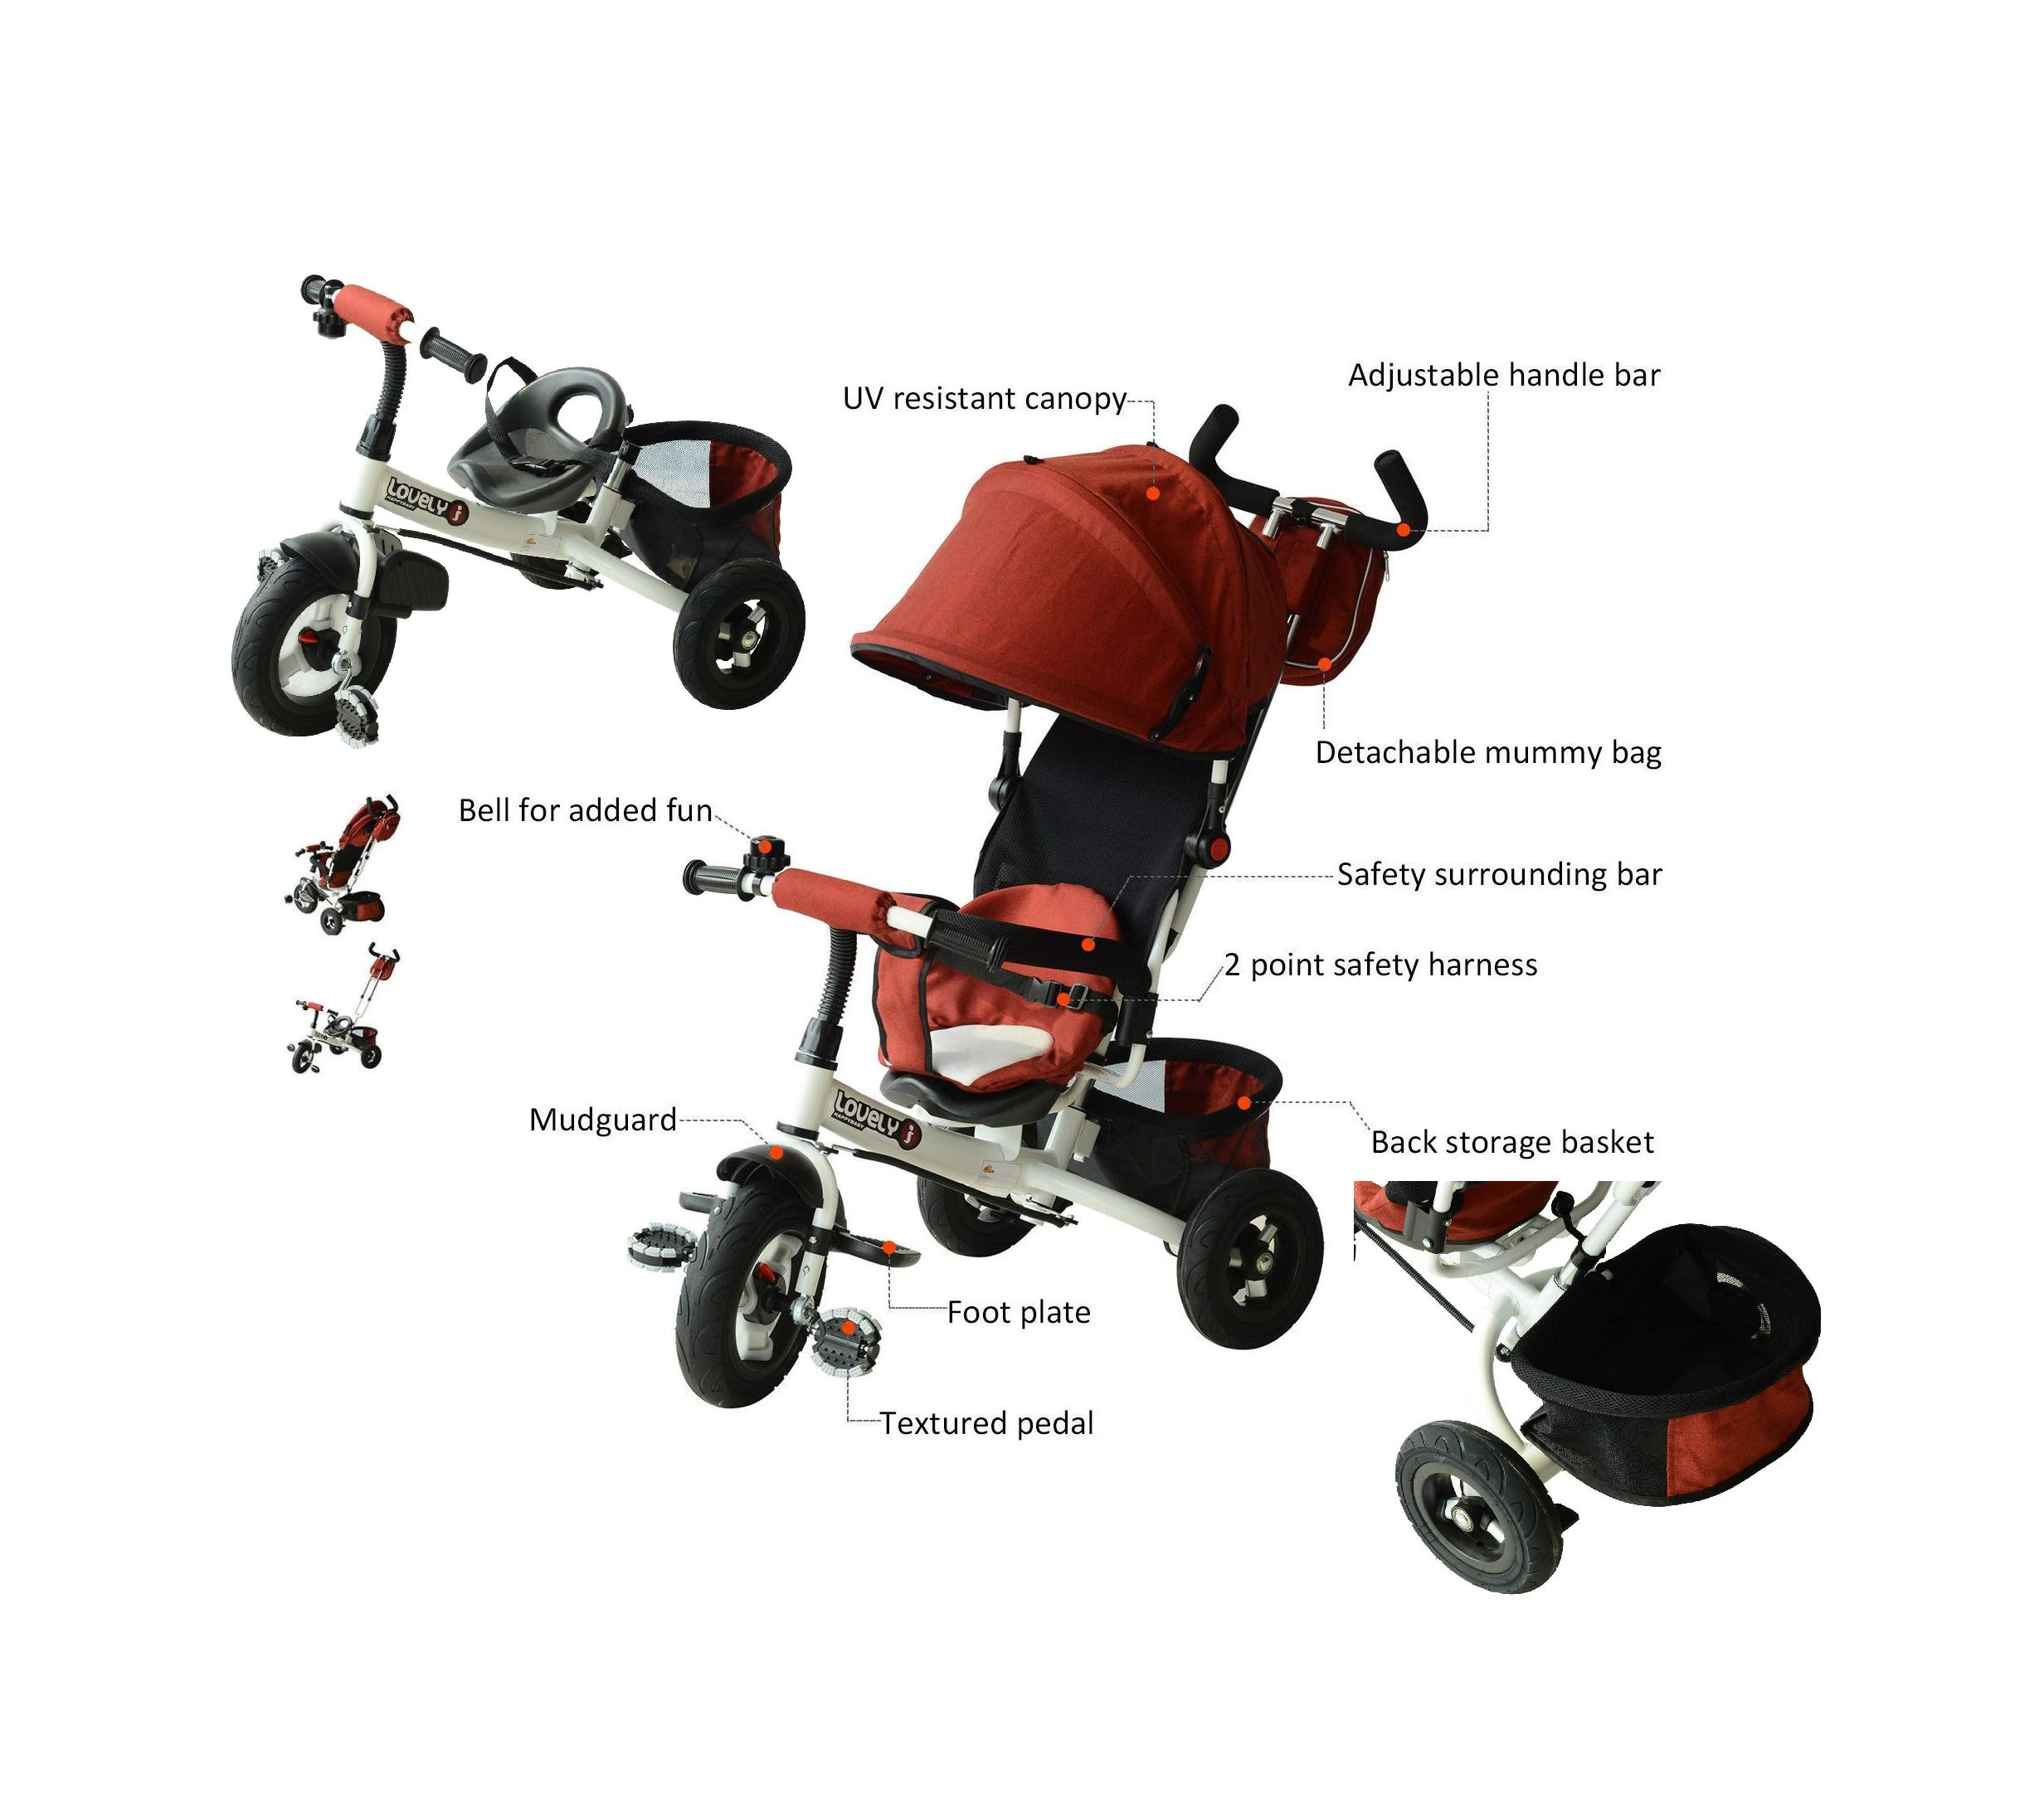 2in1 Safety Kid Baby Ride On Tricycle Trike Stroler Push Toddler Steel Play Toy Red Quick Arrive